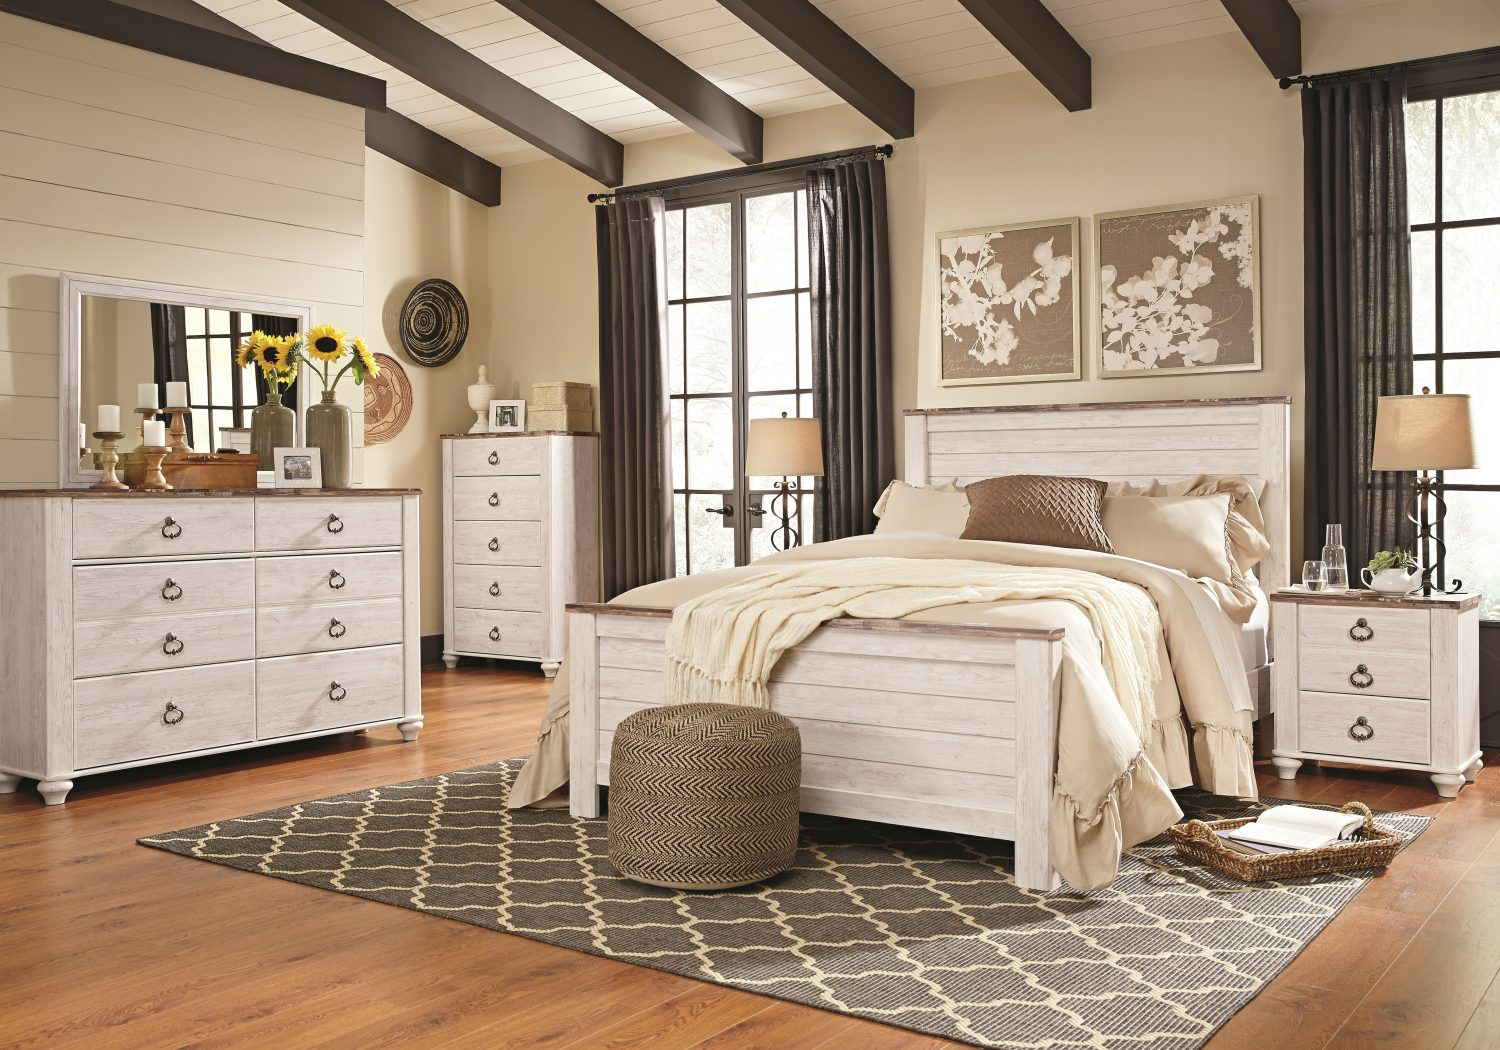 Setting Up The Perfect Guest Room